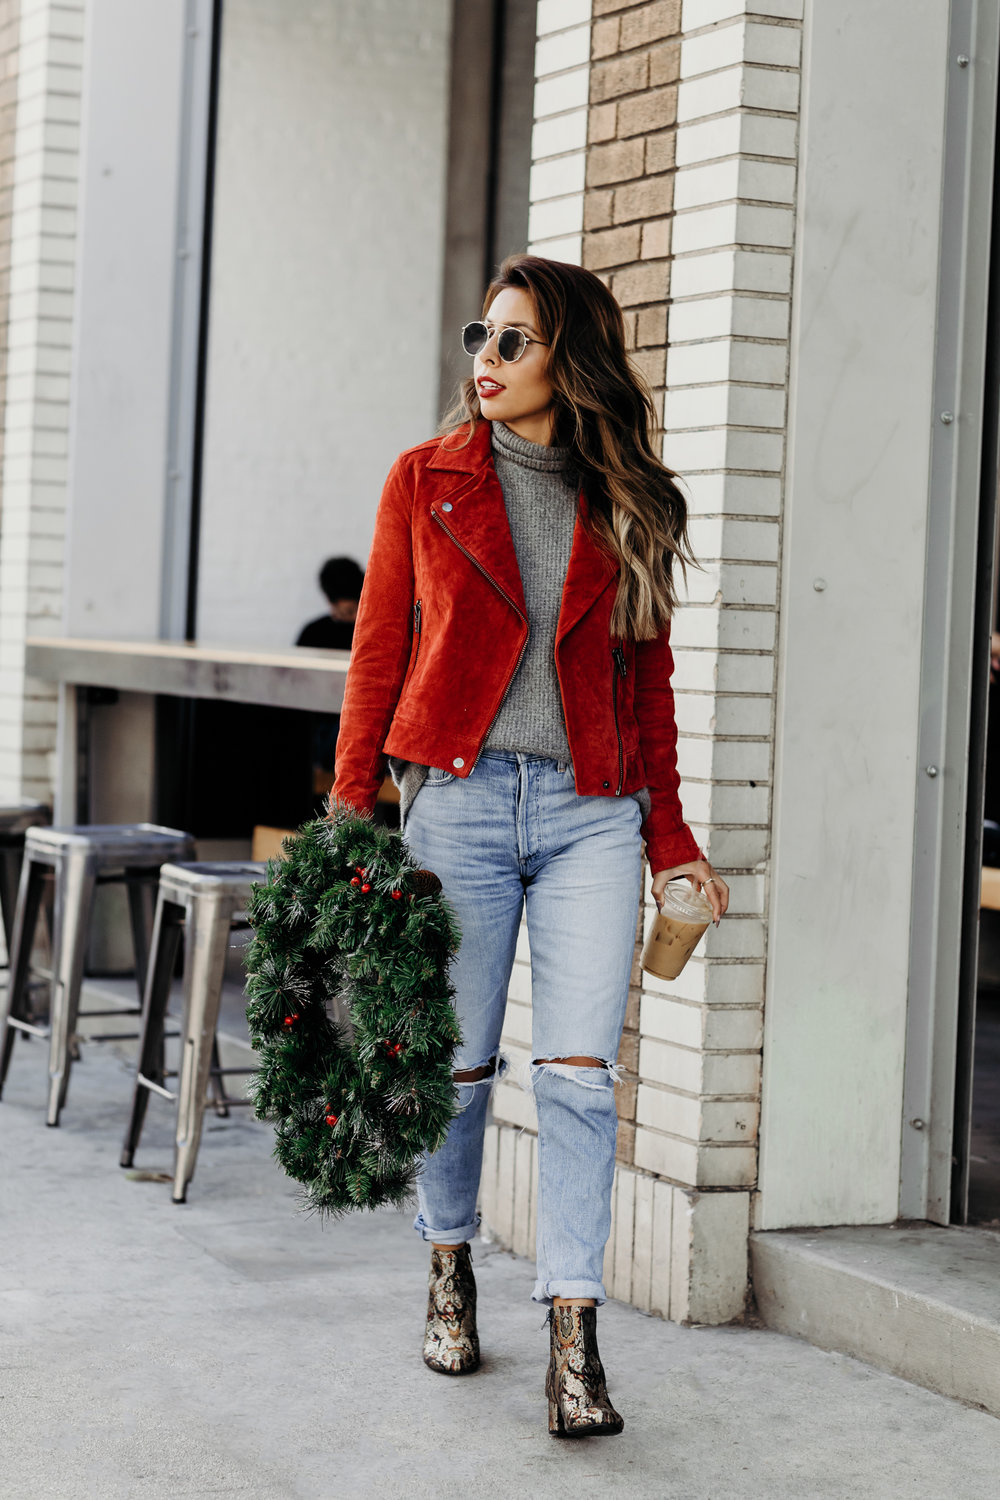 casual holiday look, outfit ideas for Christmas, booties and jeans look